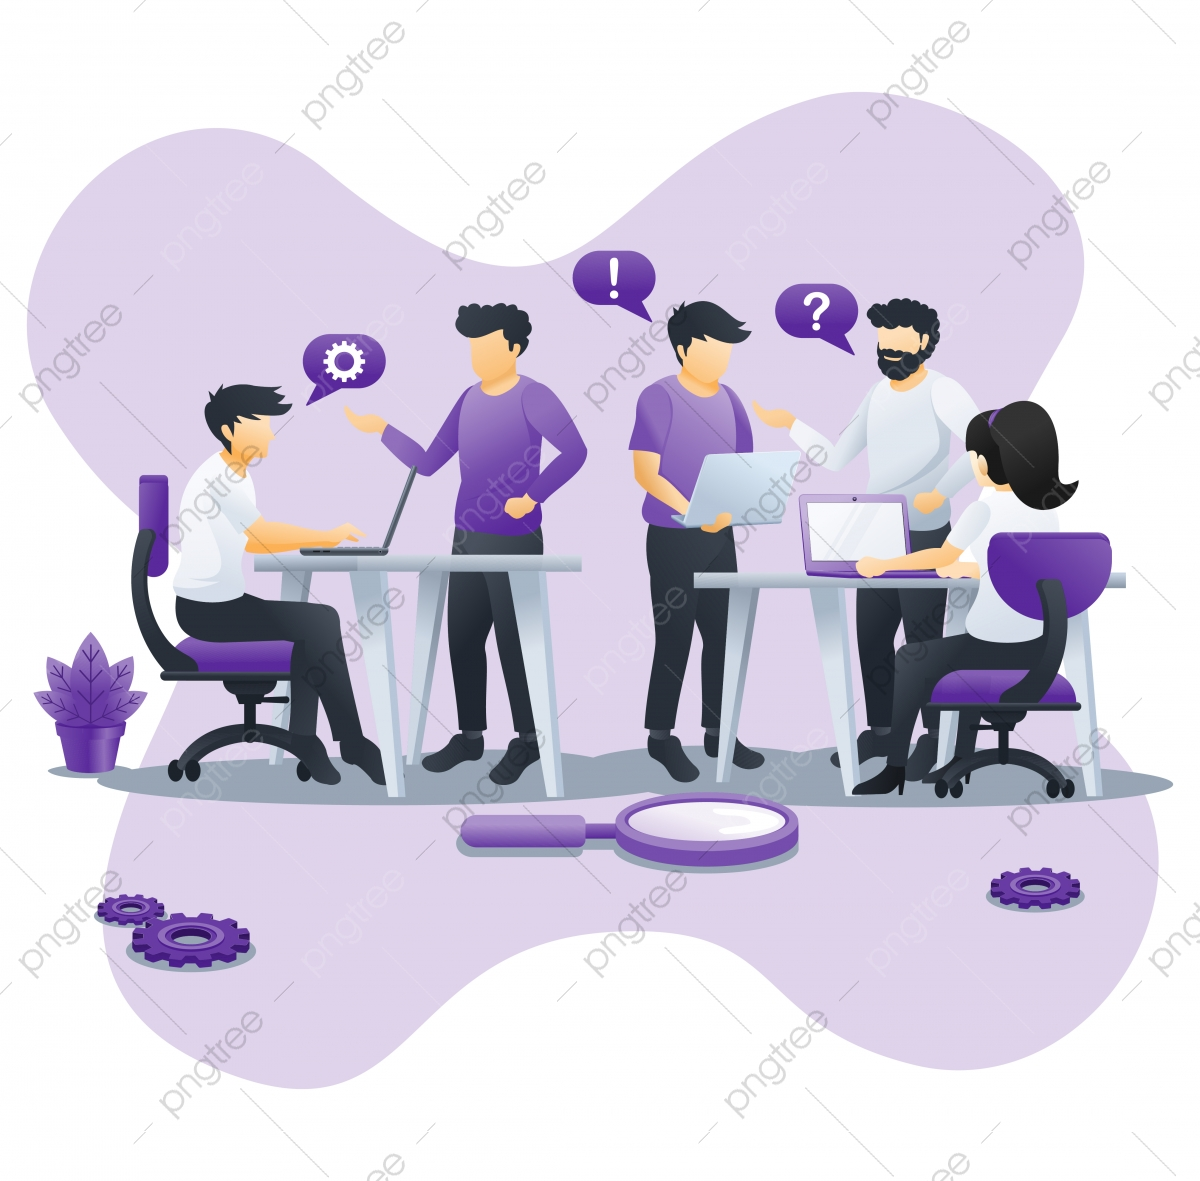 Team Work Concept Design With People Work On Table Business Leadership Cooperation Partnership Team Metaphor Team Work Symbol Flat Vector Illustration Brainstorming Business Businessman Png And Vector With Transparent Background For Free